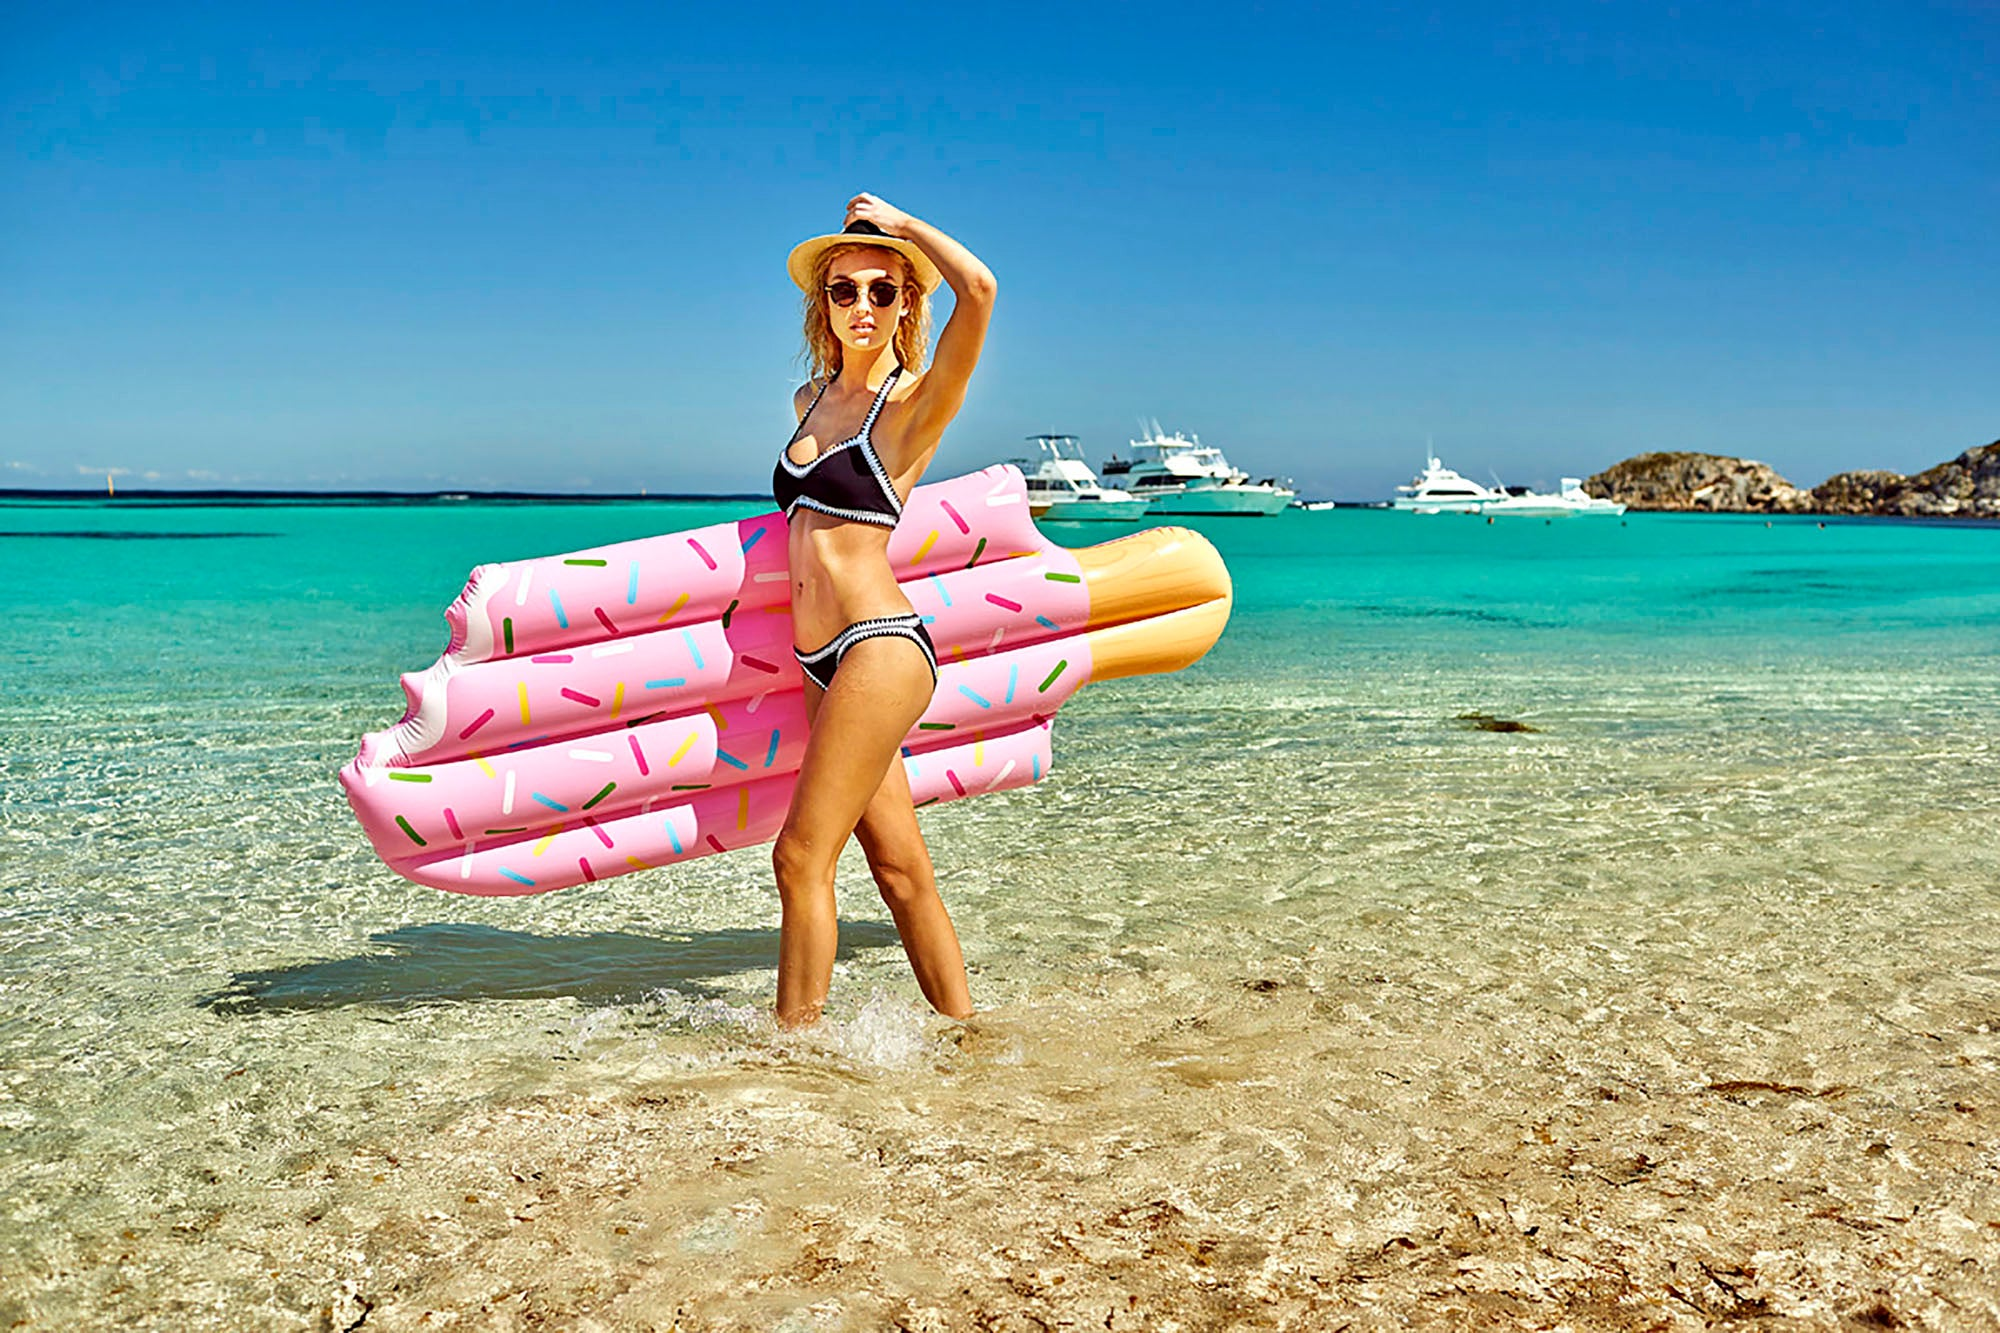 Ice Cream Pool Floats. Pink or Blue. - Chachi's Bay - kids rashies - kids swimwear - kids swim shoes - round towels - beach towels